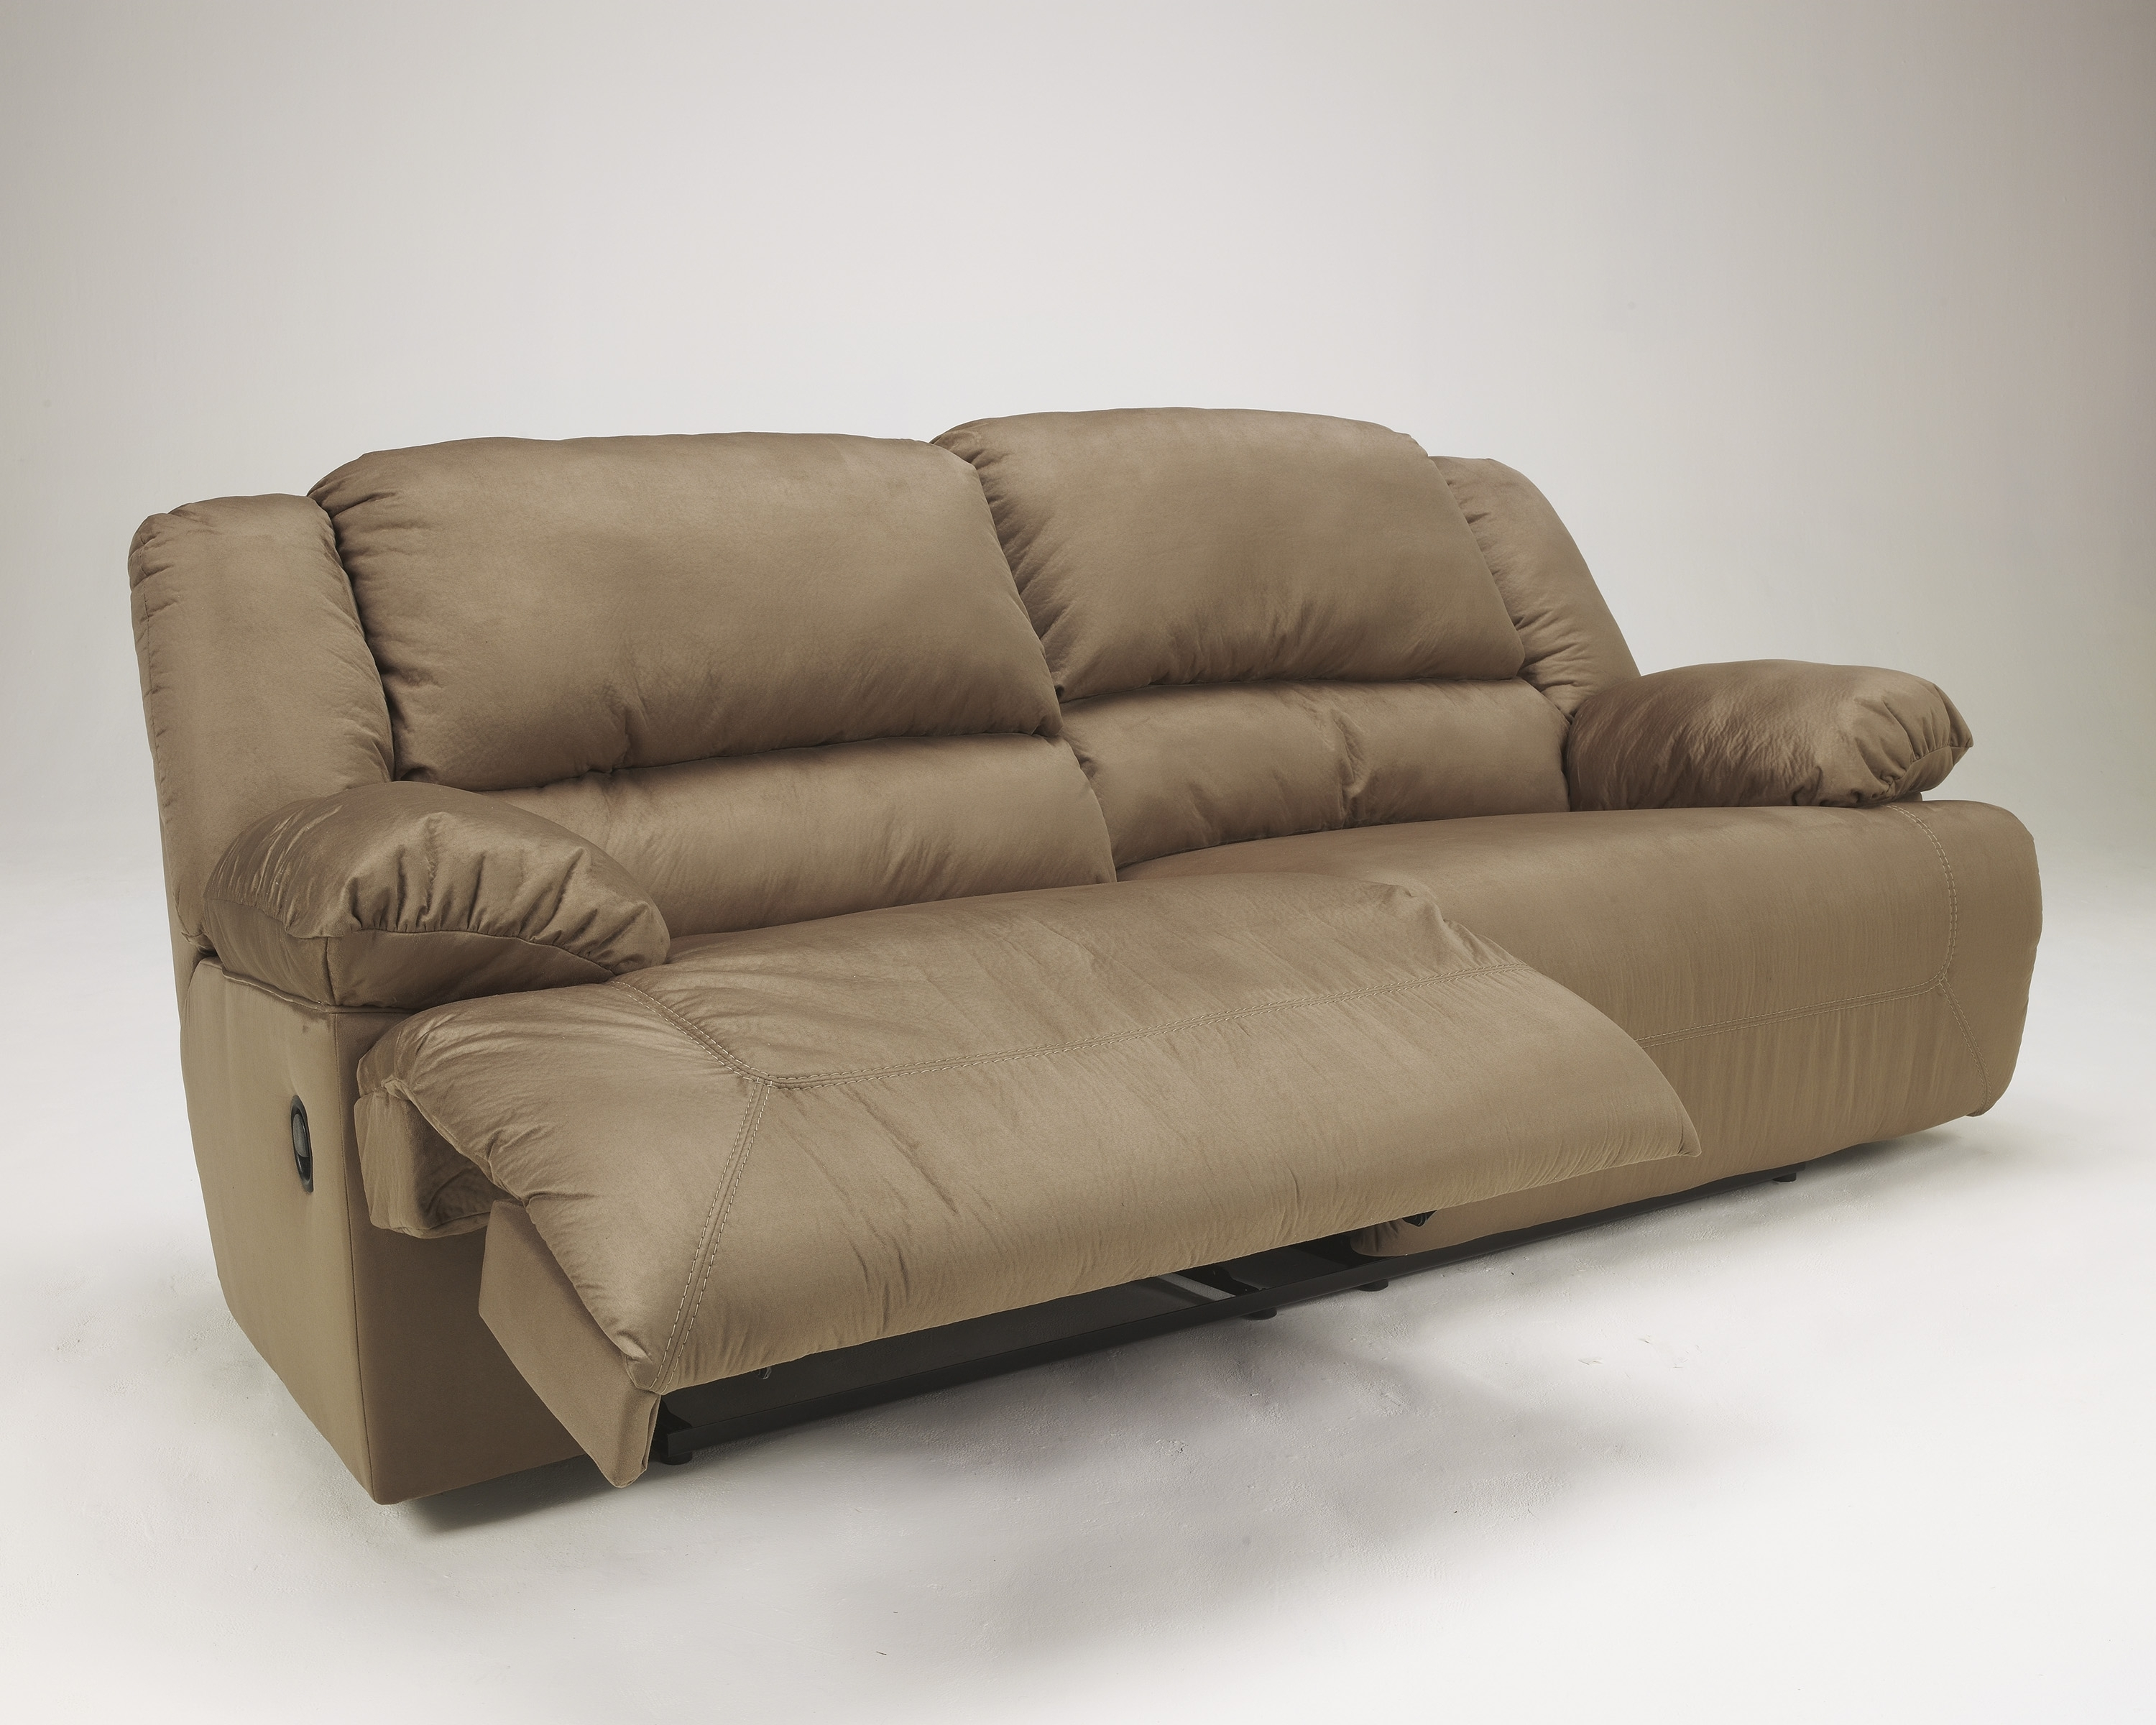 Furniture Find Your Maximum Comfort With Reclining Couches For Couch pertaining to Aspen 2 Piece Sleeper Sectionals With Laf Chaise (Image 11 of 30)